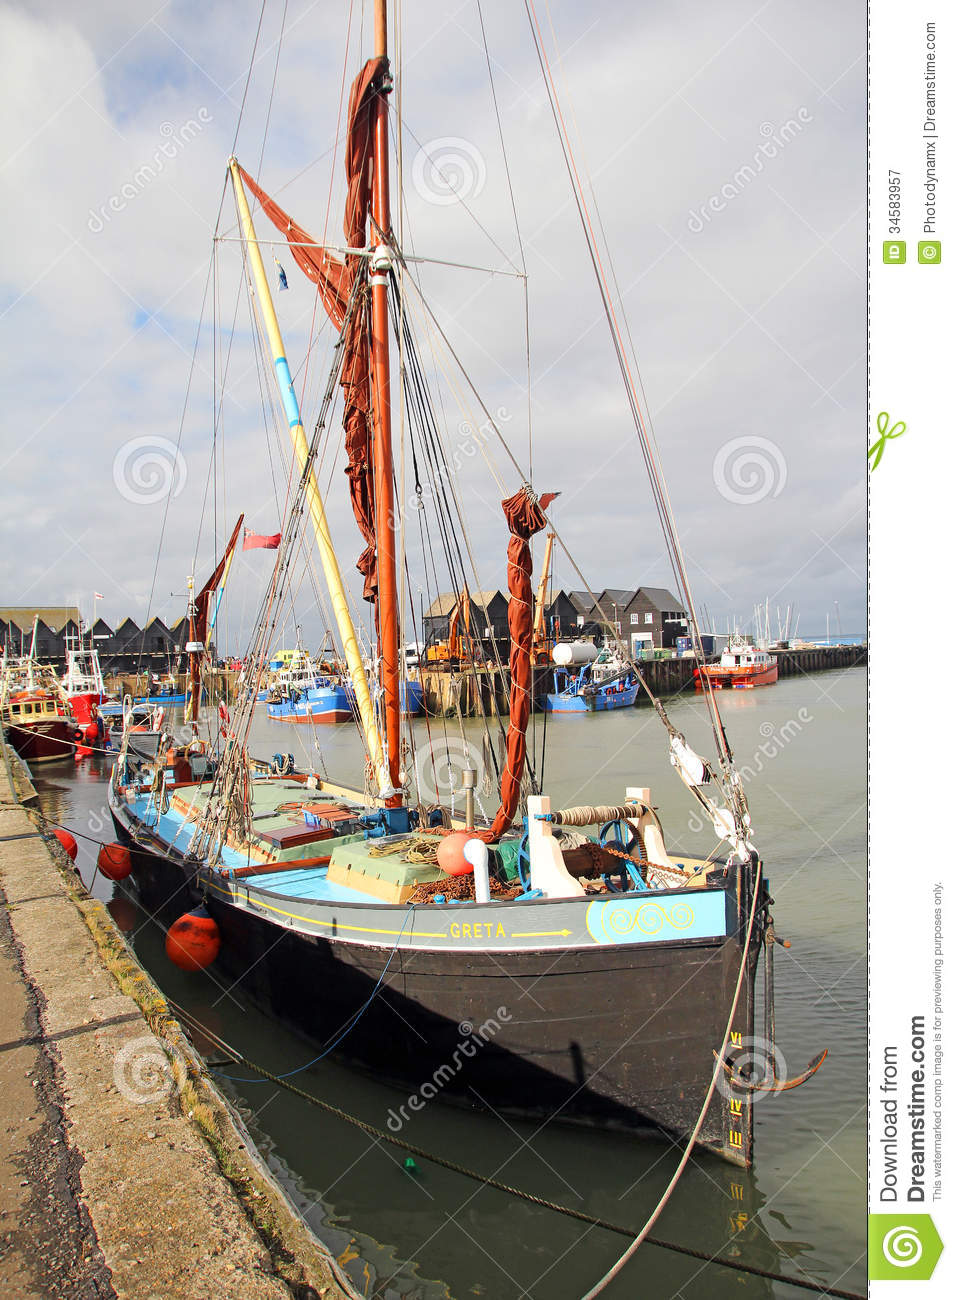 Greta Sailing Barge In Whitstable Harbour Editorial Photography - Image: 34583957